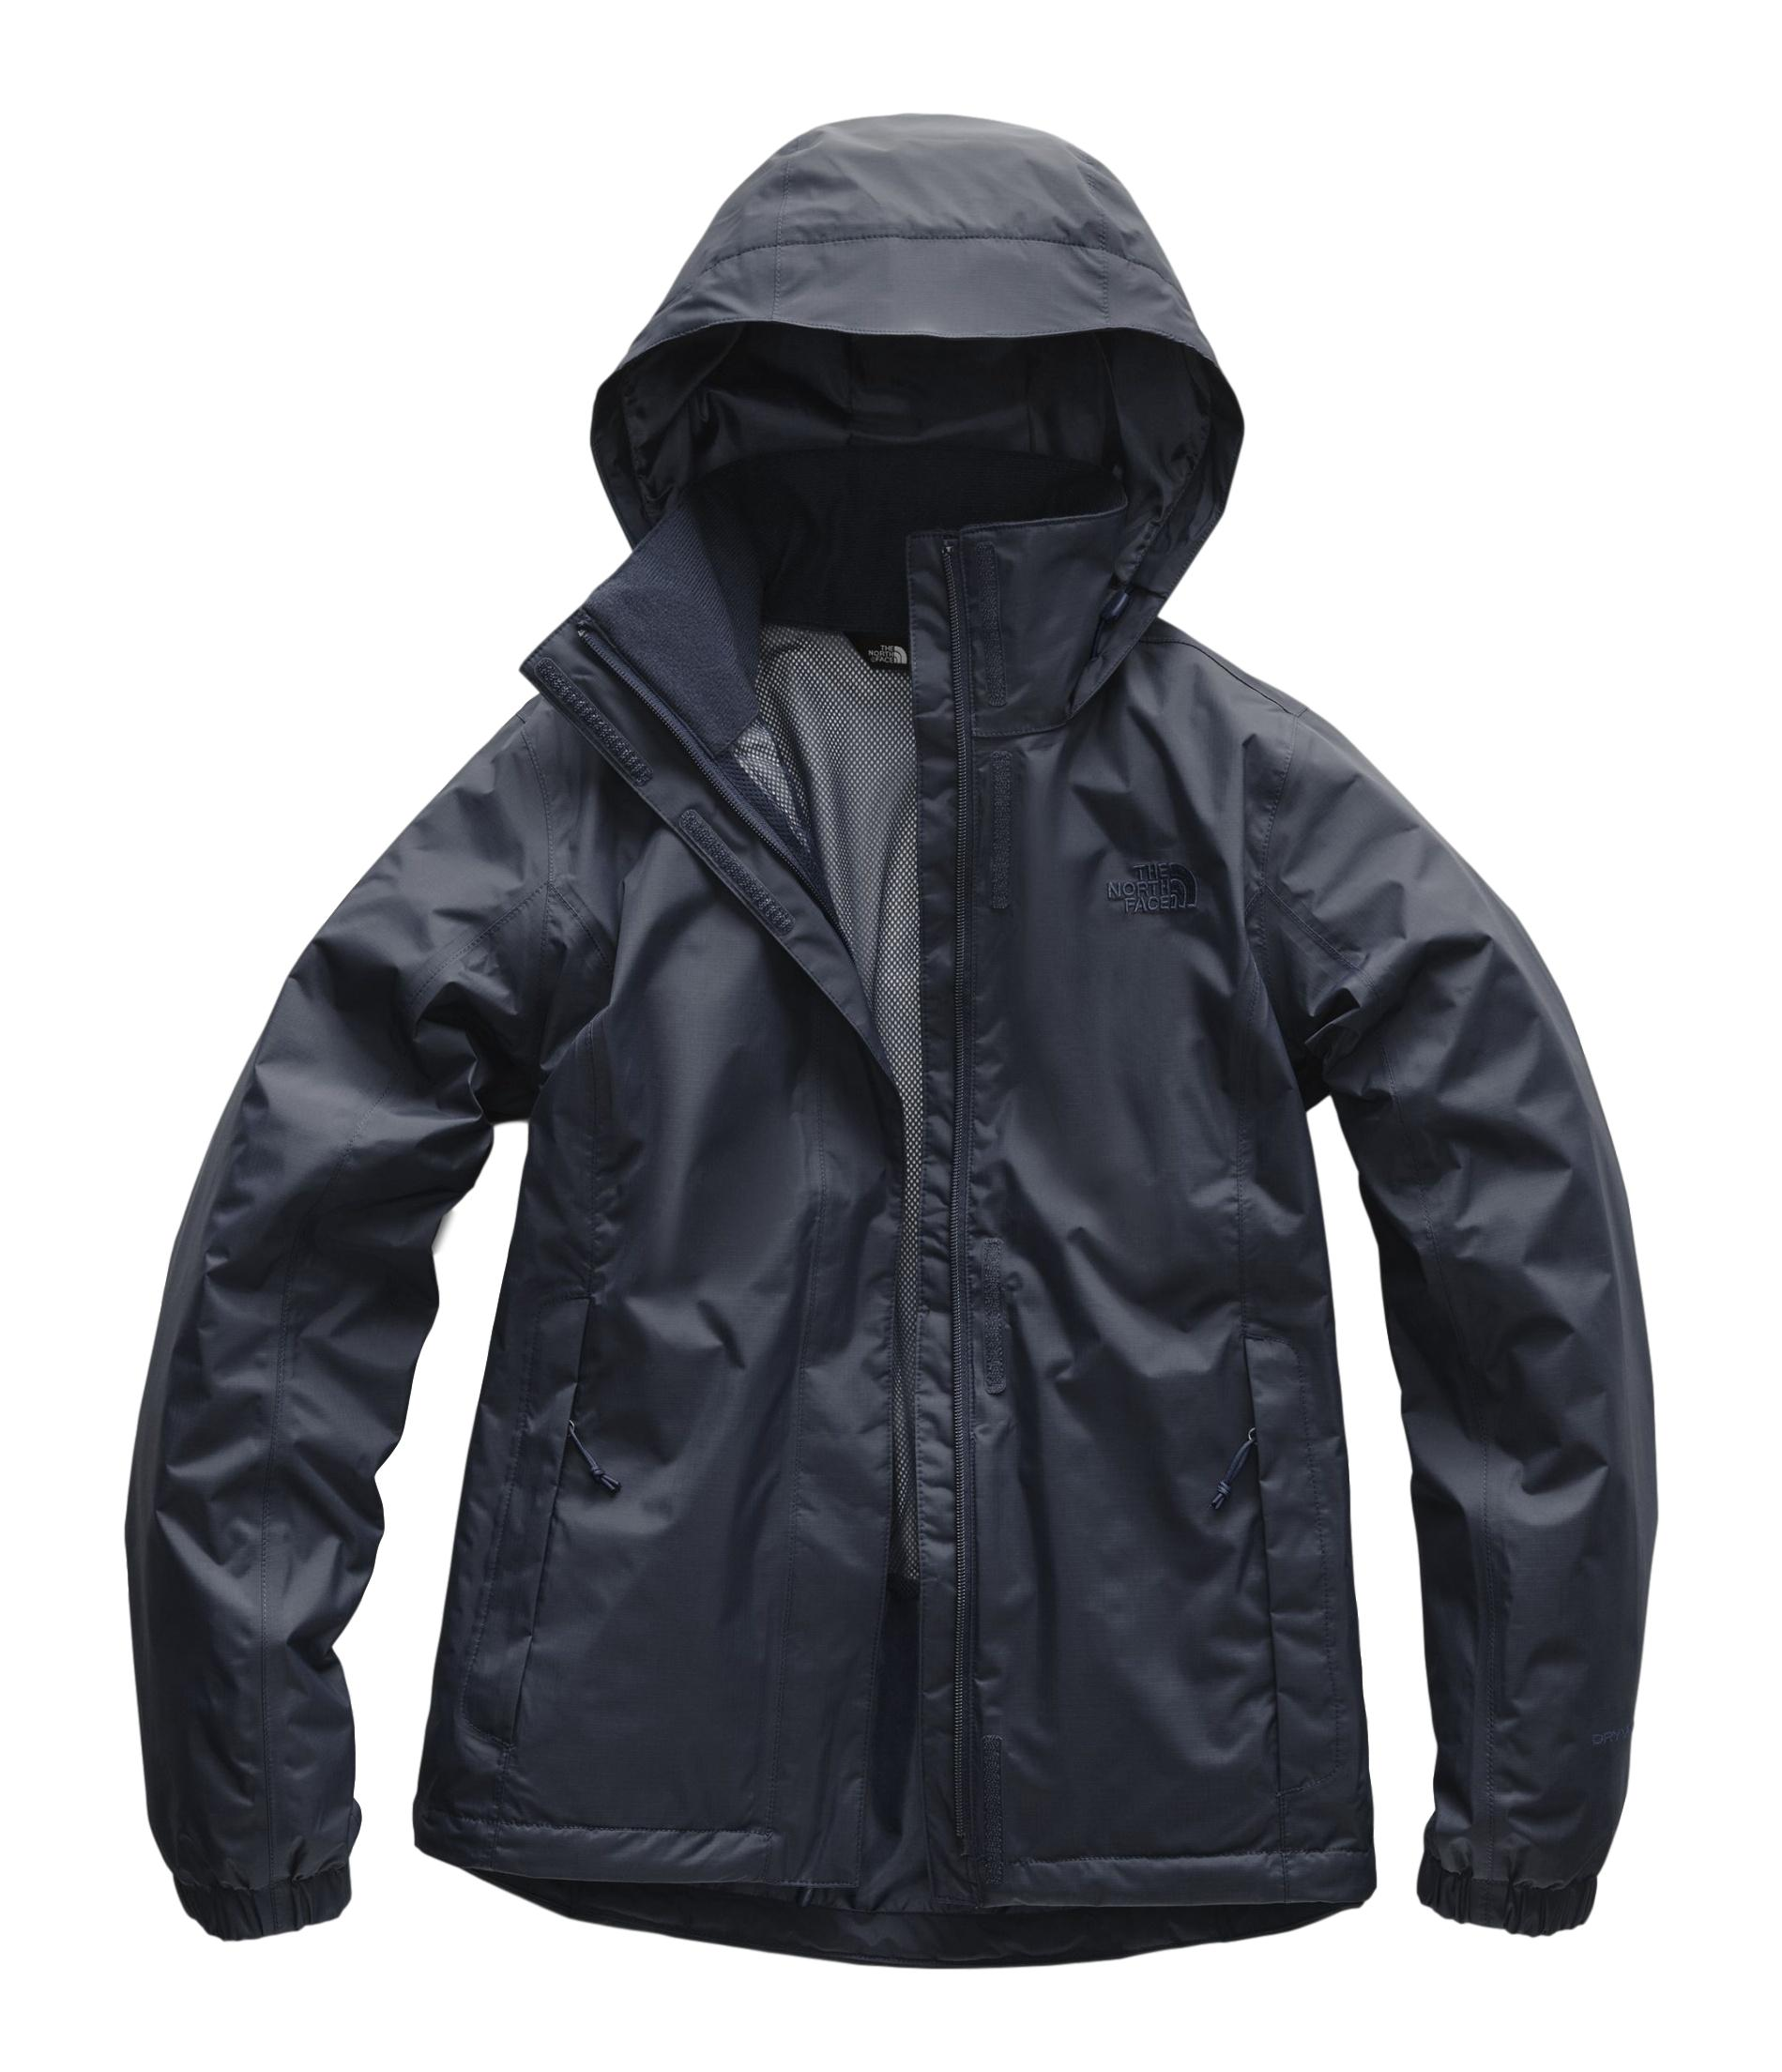 25bdb539 The North Face Resolve 2 Jacket - Women's - Gear Coop